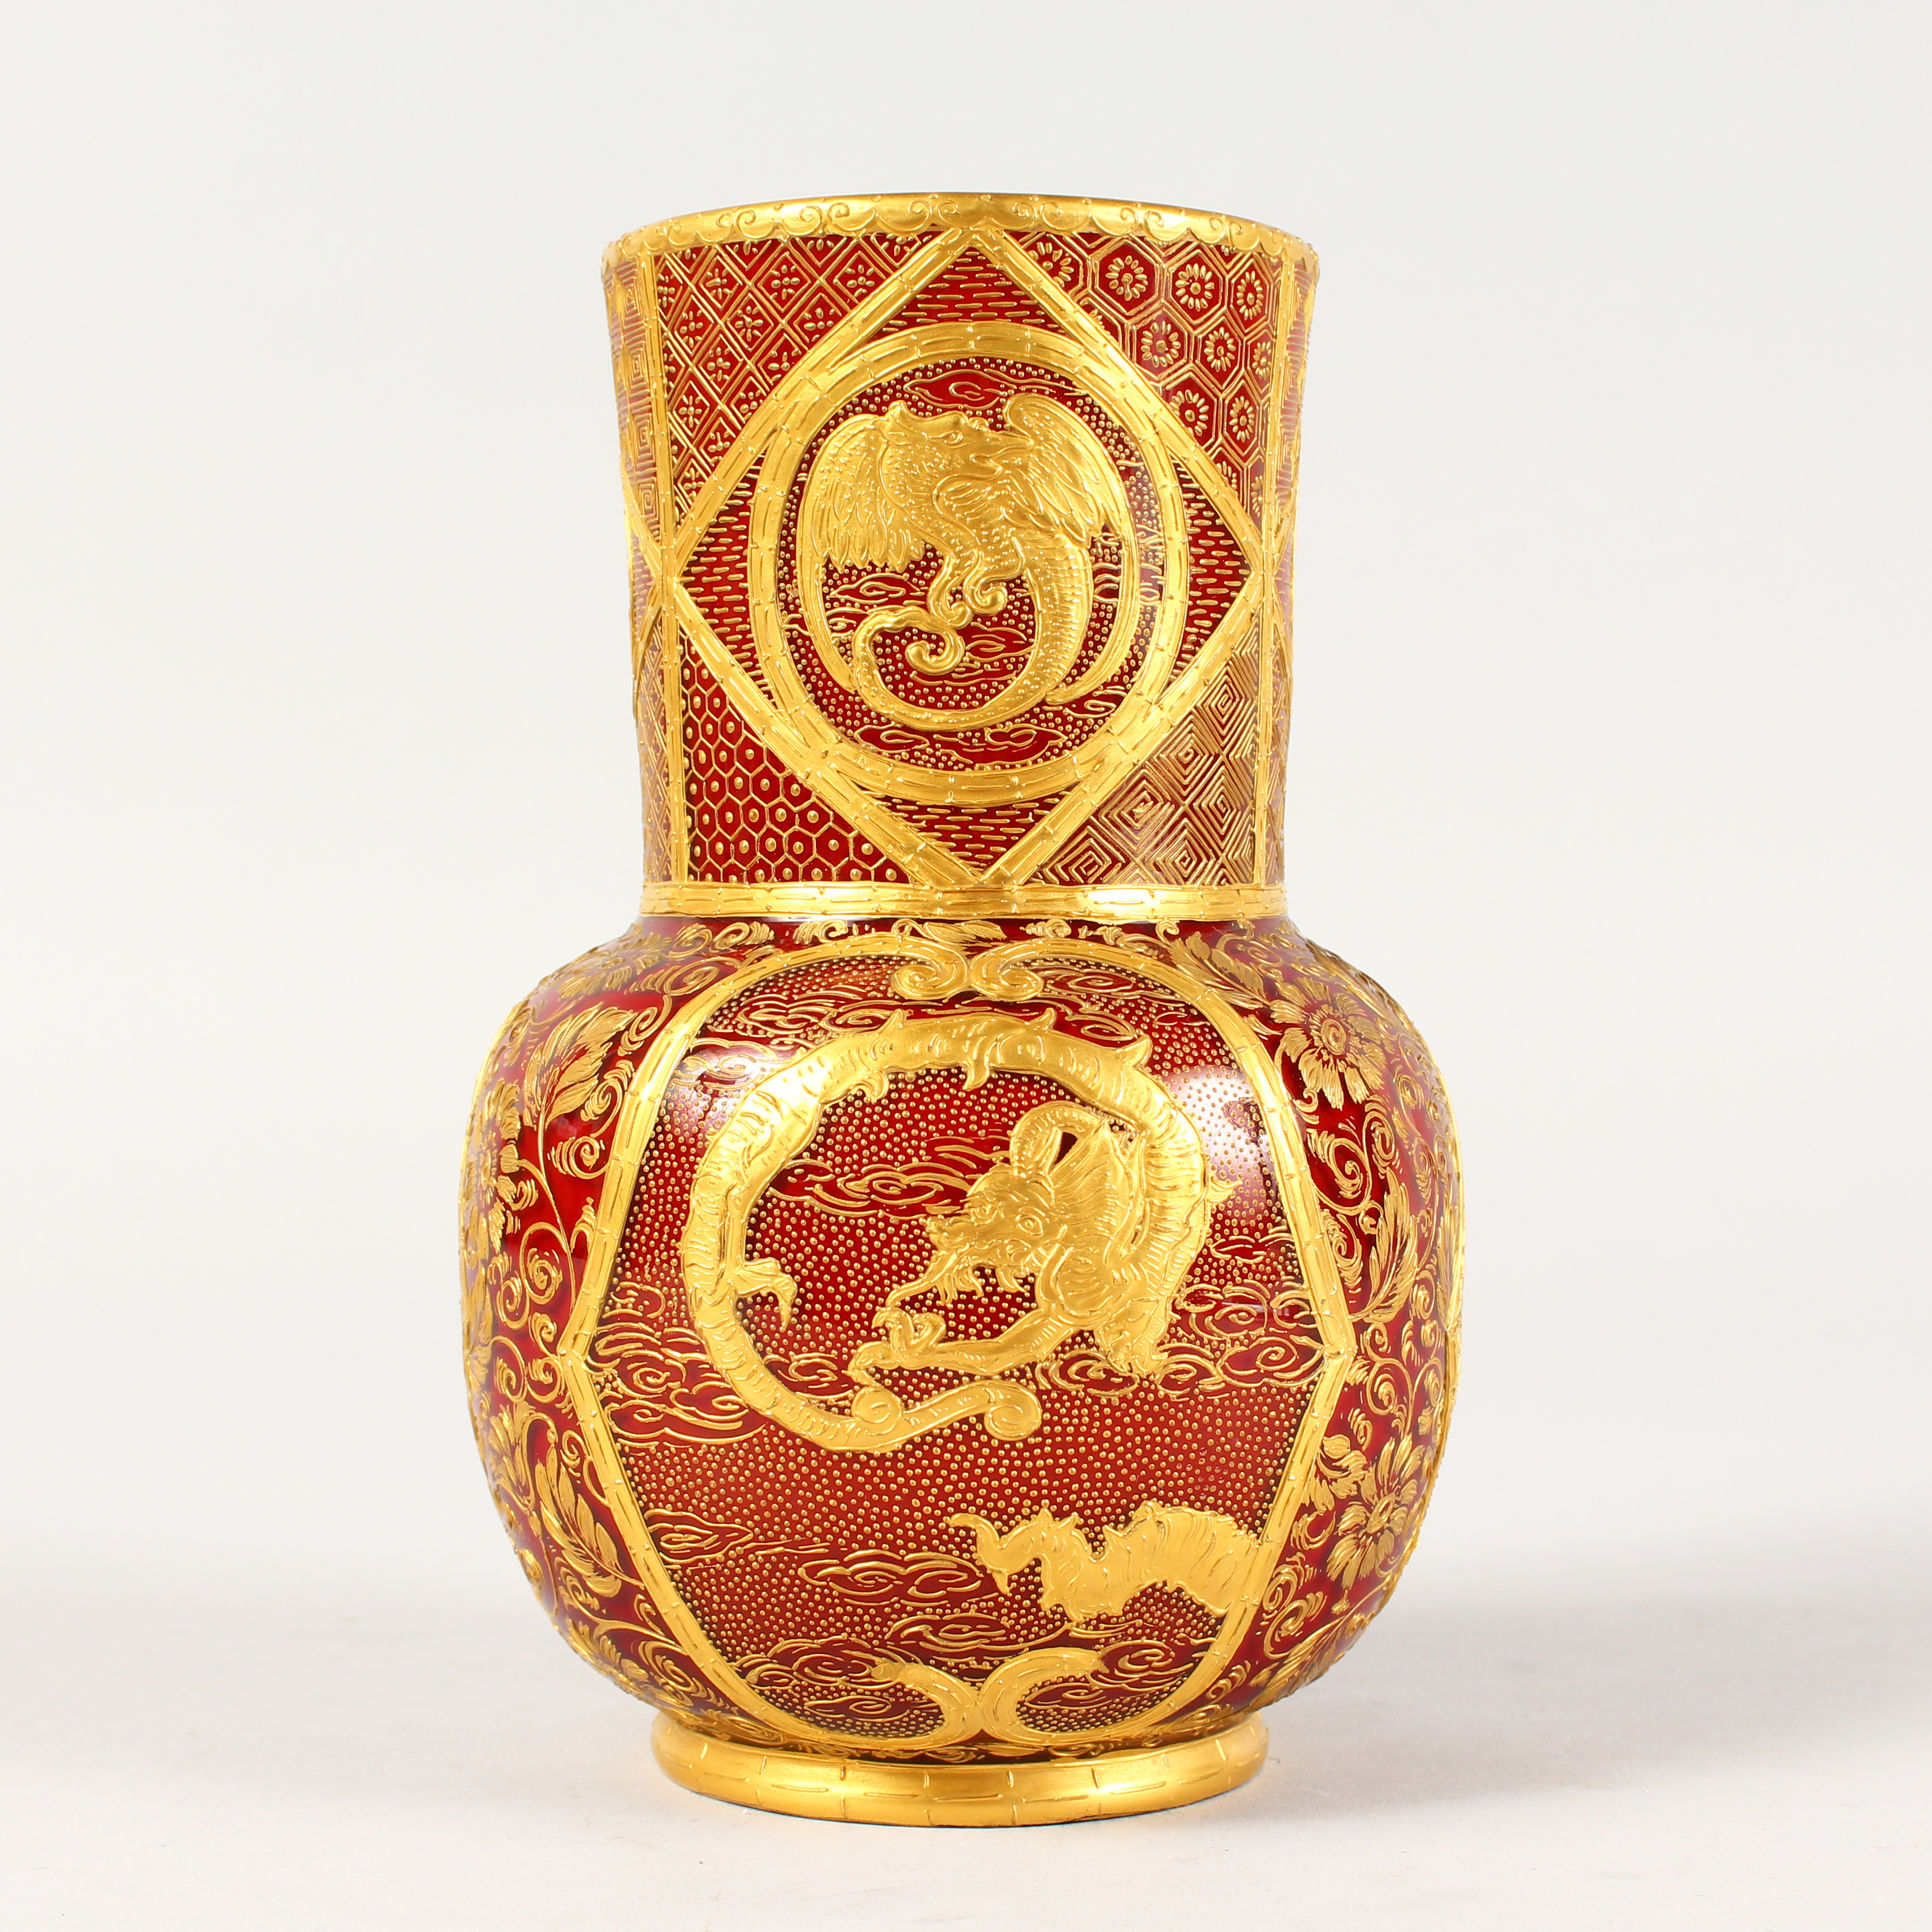 A superb English glass vase, decorated with dragons and flowers reputedly made for the Chinese Emperor./Auctioneers and Valuers